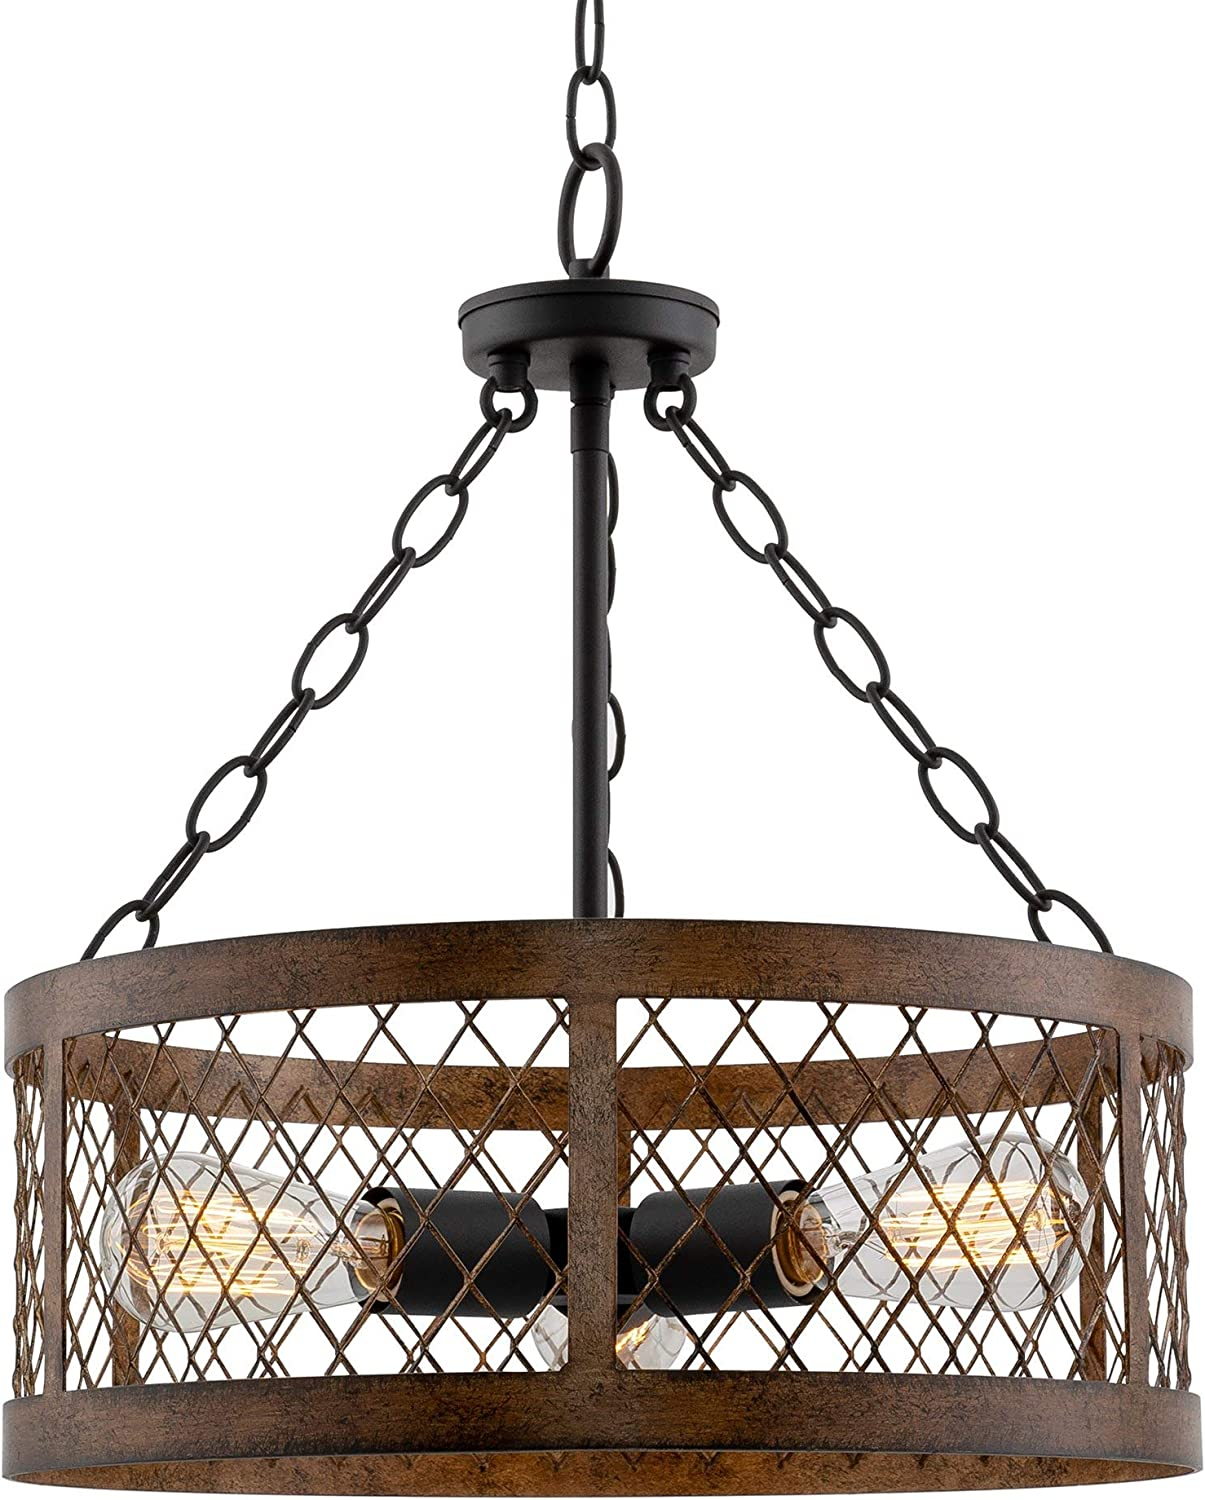 "Kira Home Warwick 16"" Modern Rustic 3-Light Chandelier + Metal Lattice Shade, Mission Wood Style Frame, Black Finish"